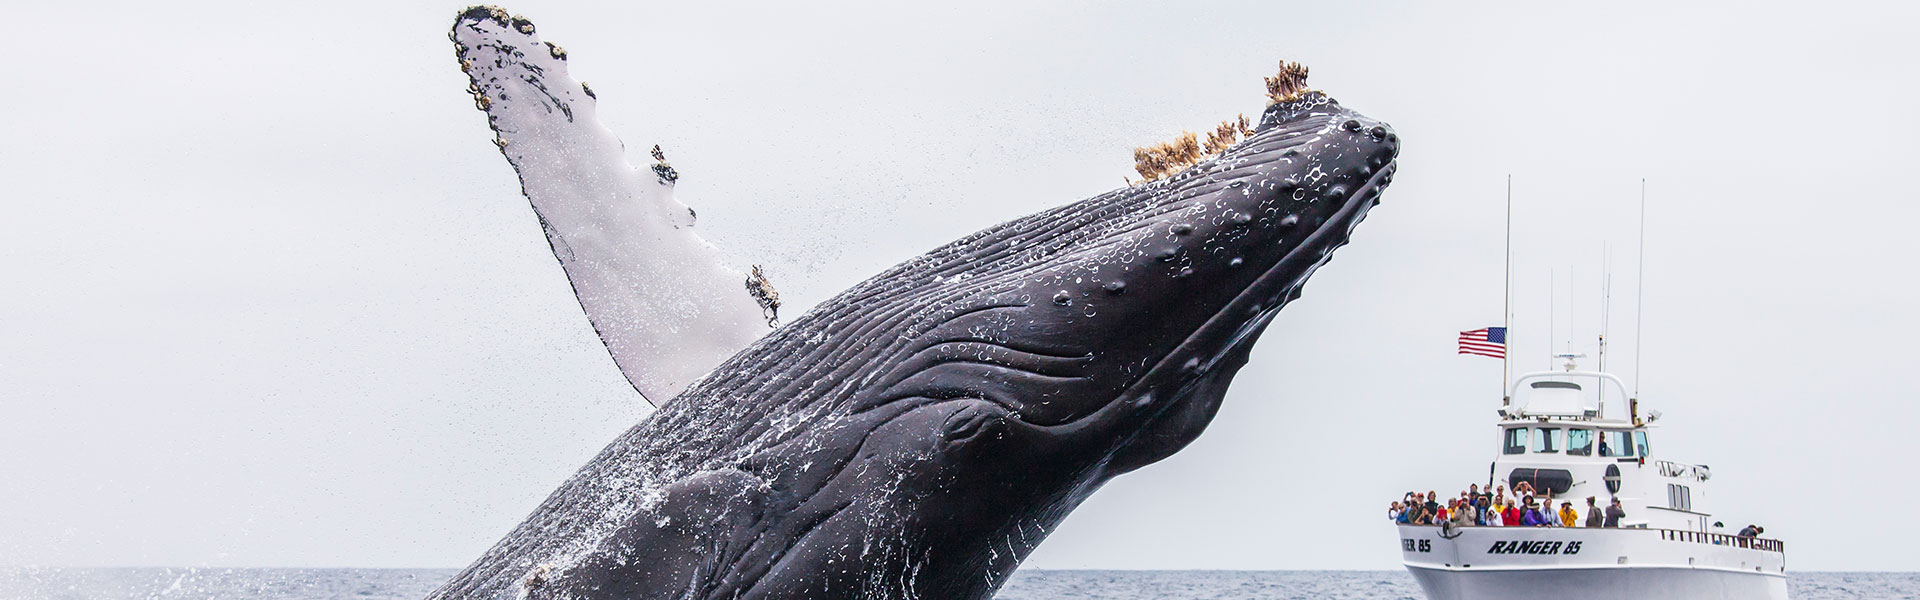 Channel-Islands-Whale-Watching_header